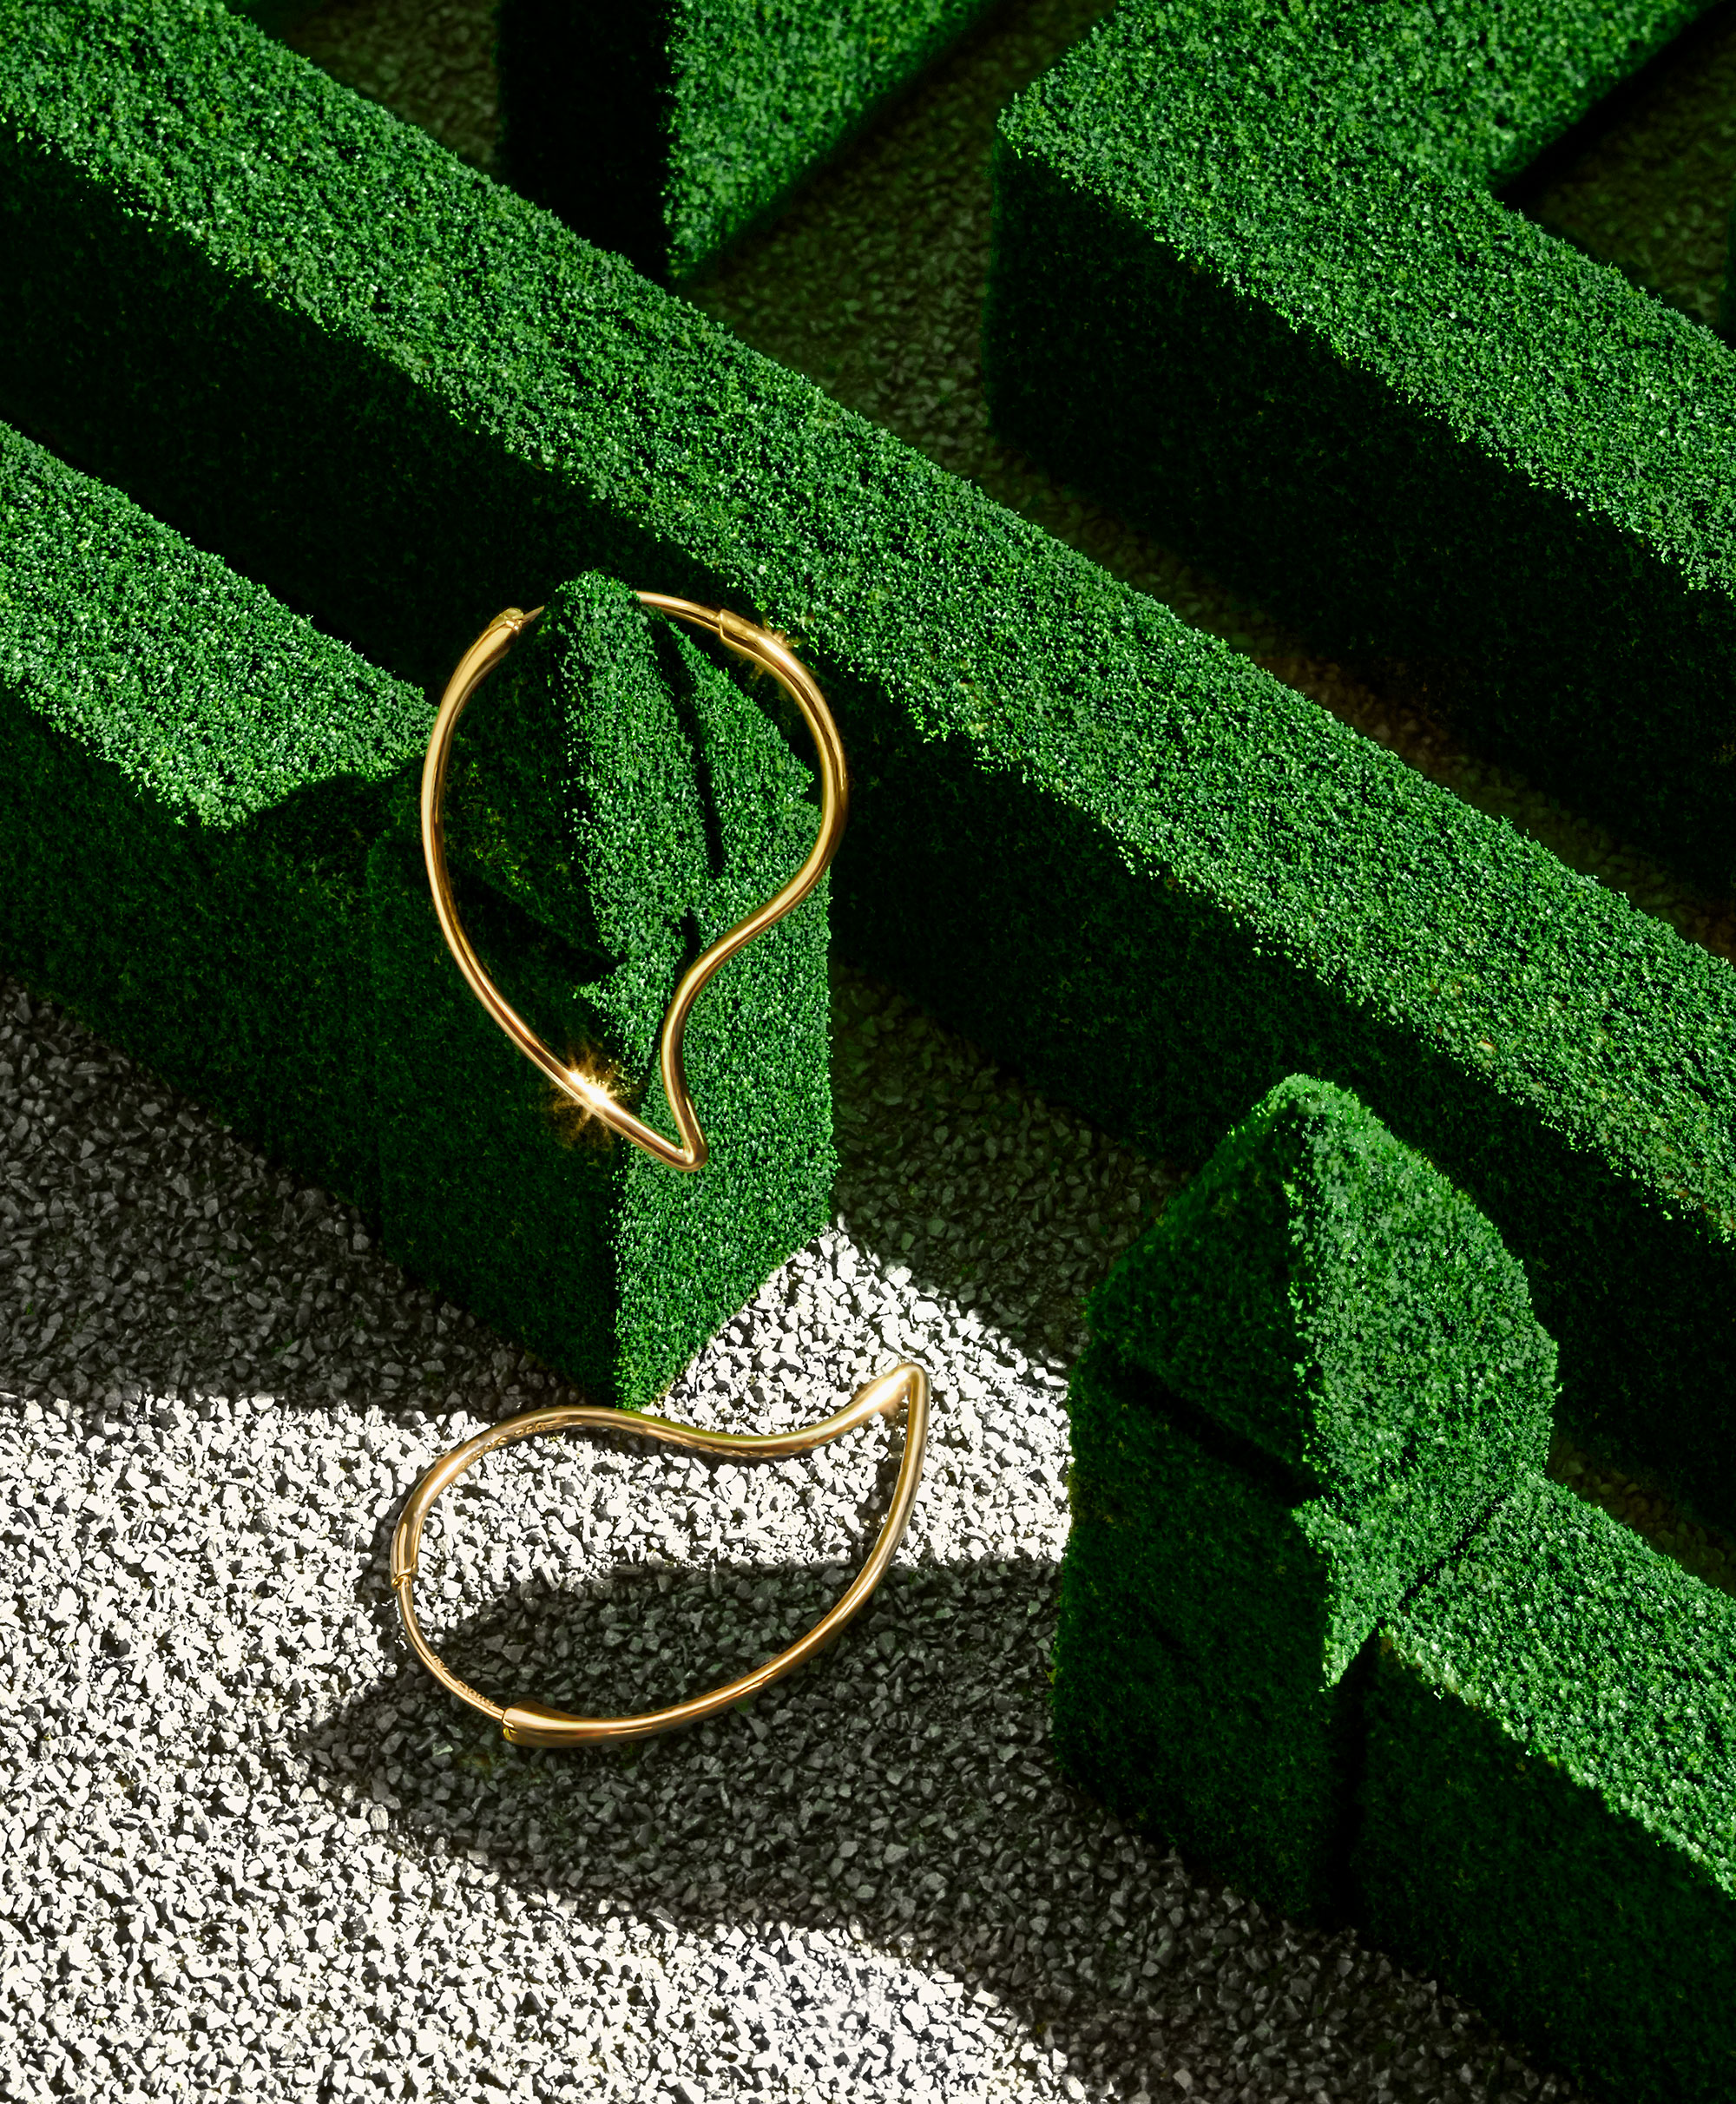 Birks Pétale Collection - Creative Direction and Art Direction by Guillaume Briere (Montreal and Toronto) - Jewellry still life photography - Maze Concept